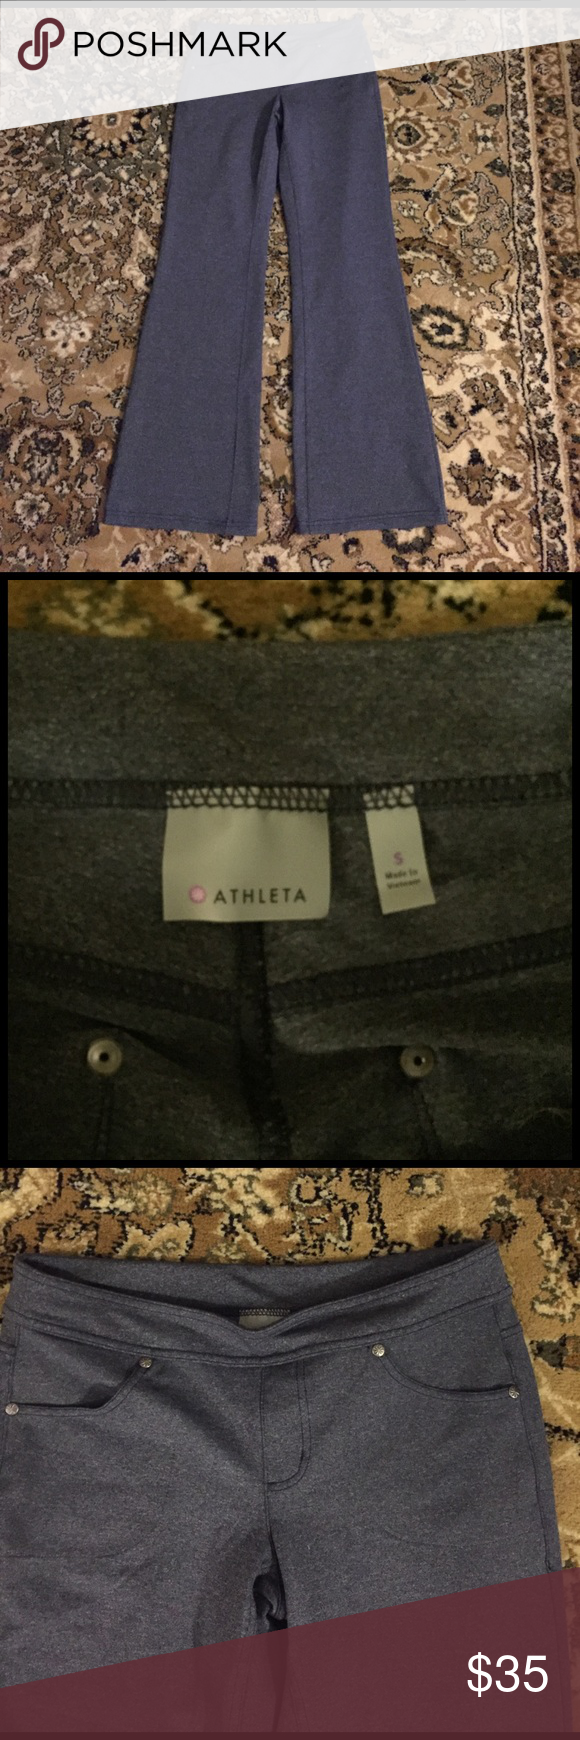 NWOT Athleta gray Bettona regular pant Awesome pair of pants....changed my mind so now they're listed....perfect for weekends or even the office ....make an offer! Athleta Pants Boot Cut & Flare